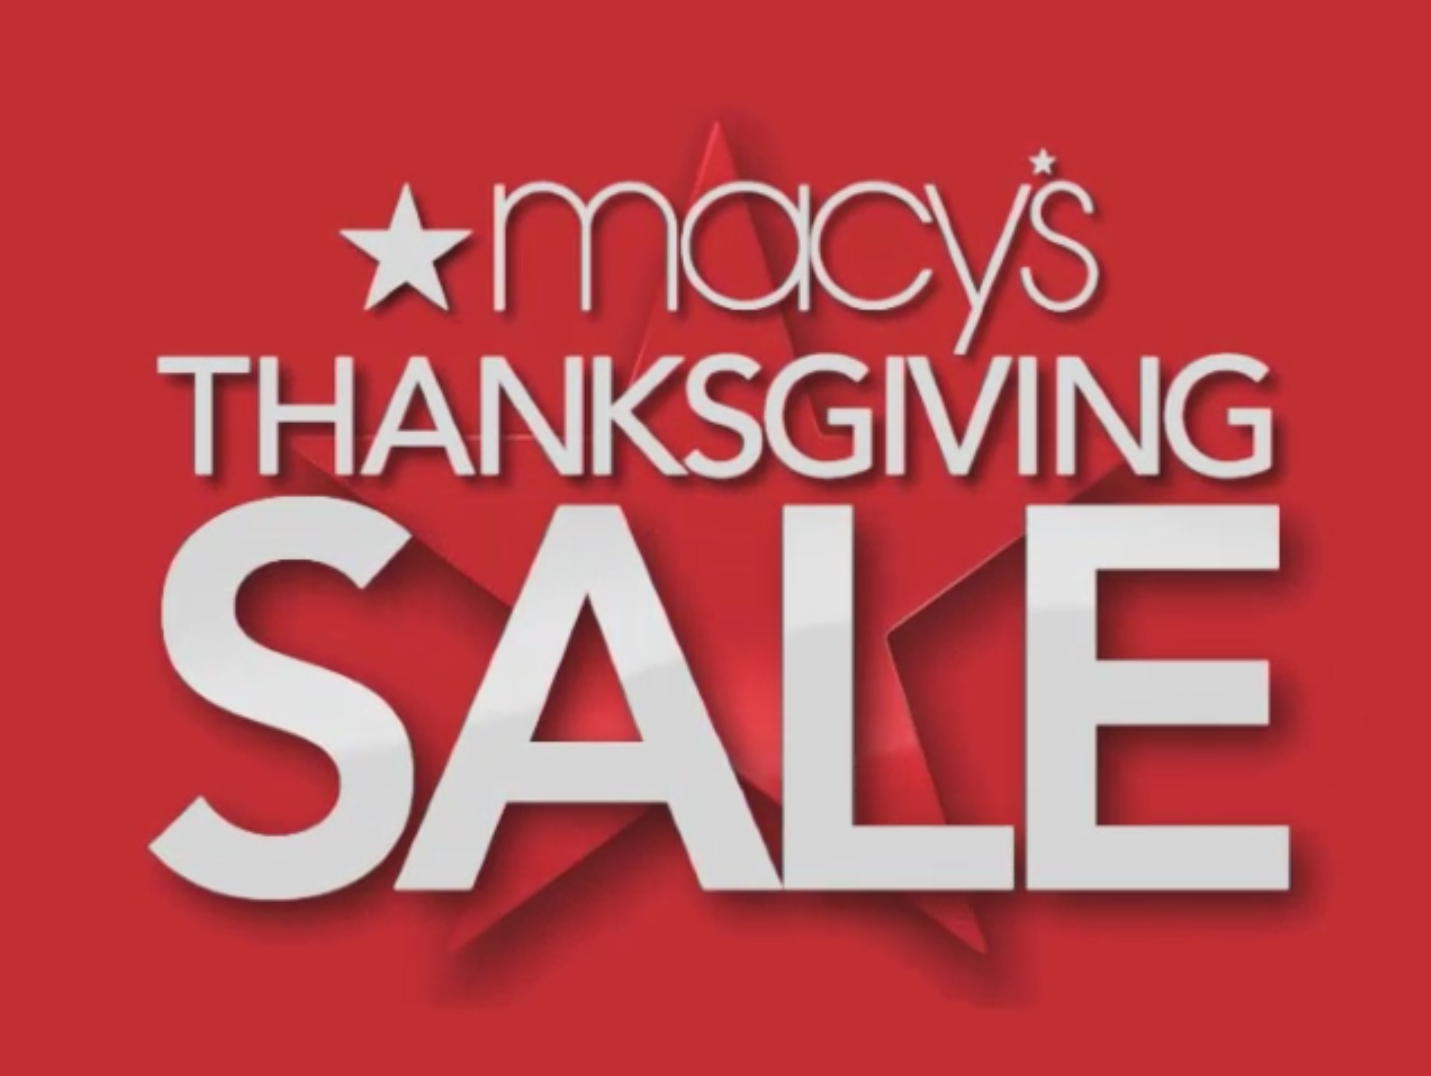 Macy's - FREE Shipping at newlightish.tk Macy's has the latest fashion brands on Women's and Men's Clothing, Accessories, Jewelry, Beauty, Shoes and Home Products.